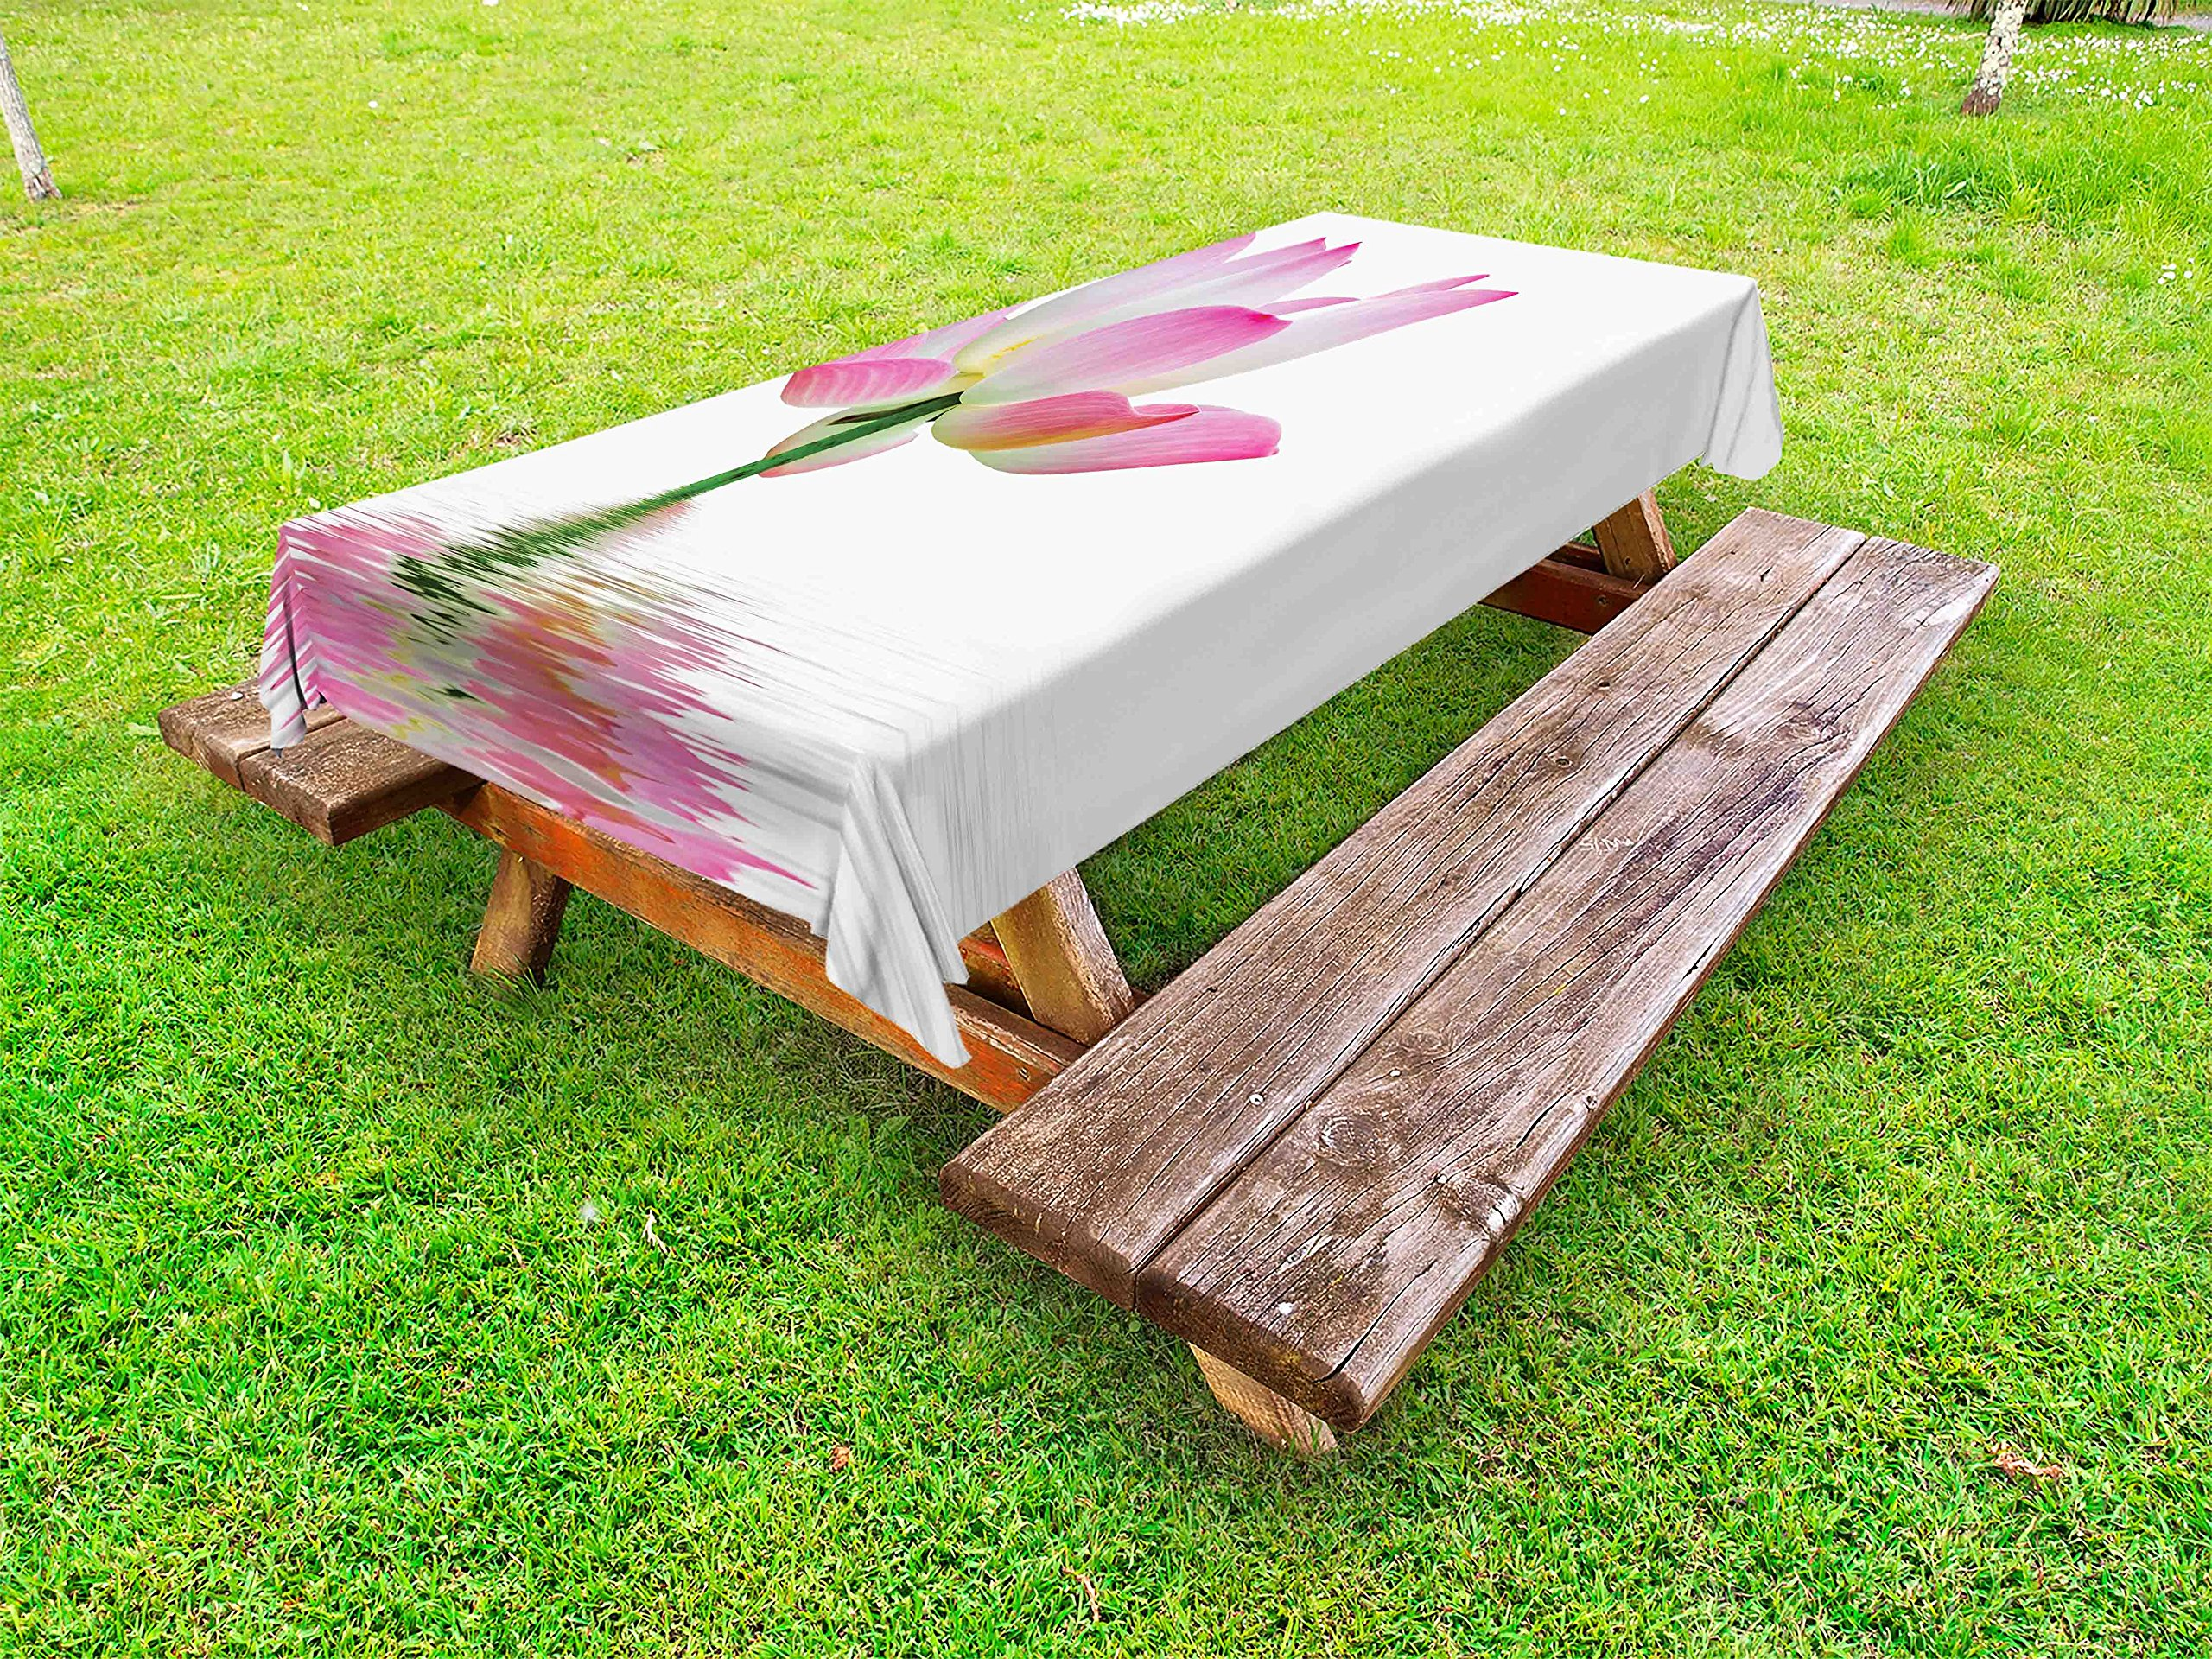 Ambesonne Pink and White Outdoor Tablecloth, Lotus Flower in Freshwater Aquatic Nature Relaxation and Spa Theme, Decorative Washable Picnic Table Cloth, 58 X 120 inches, Pink White Green